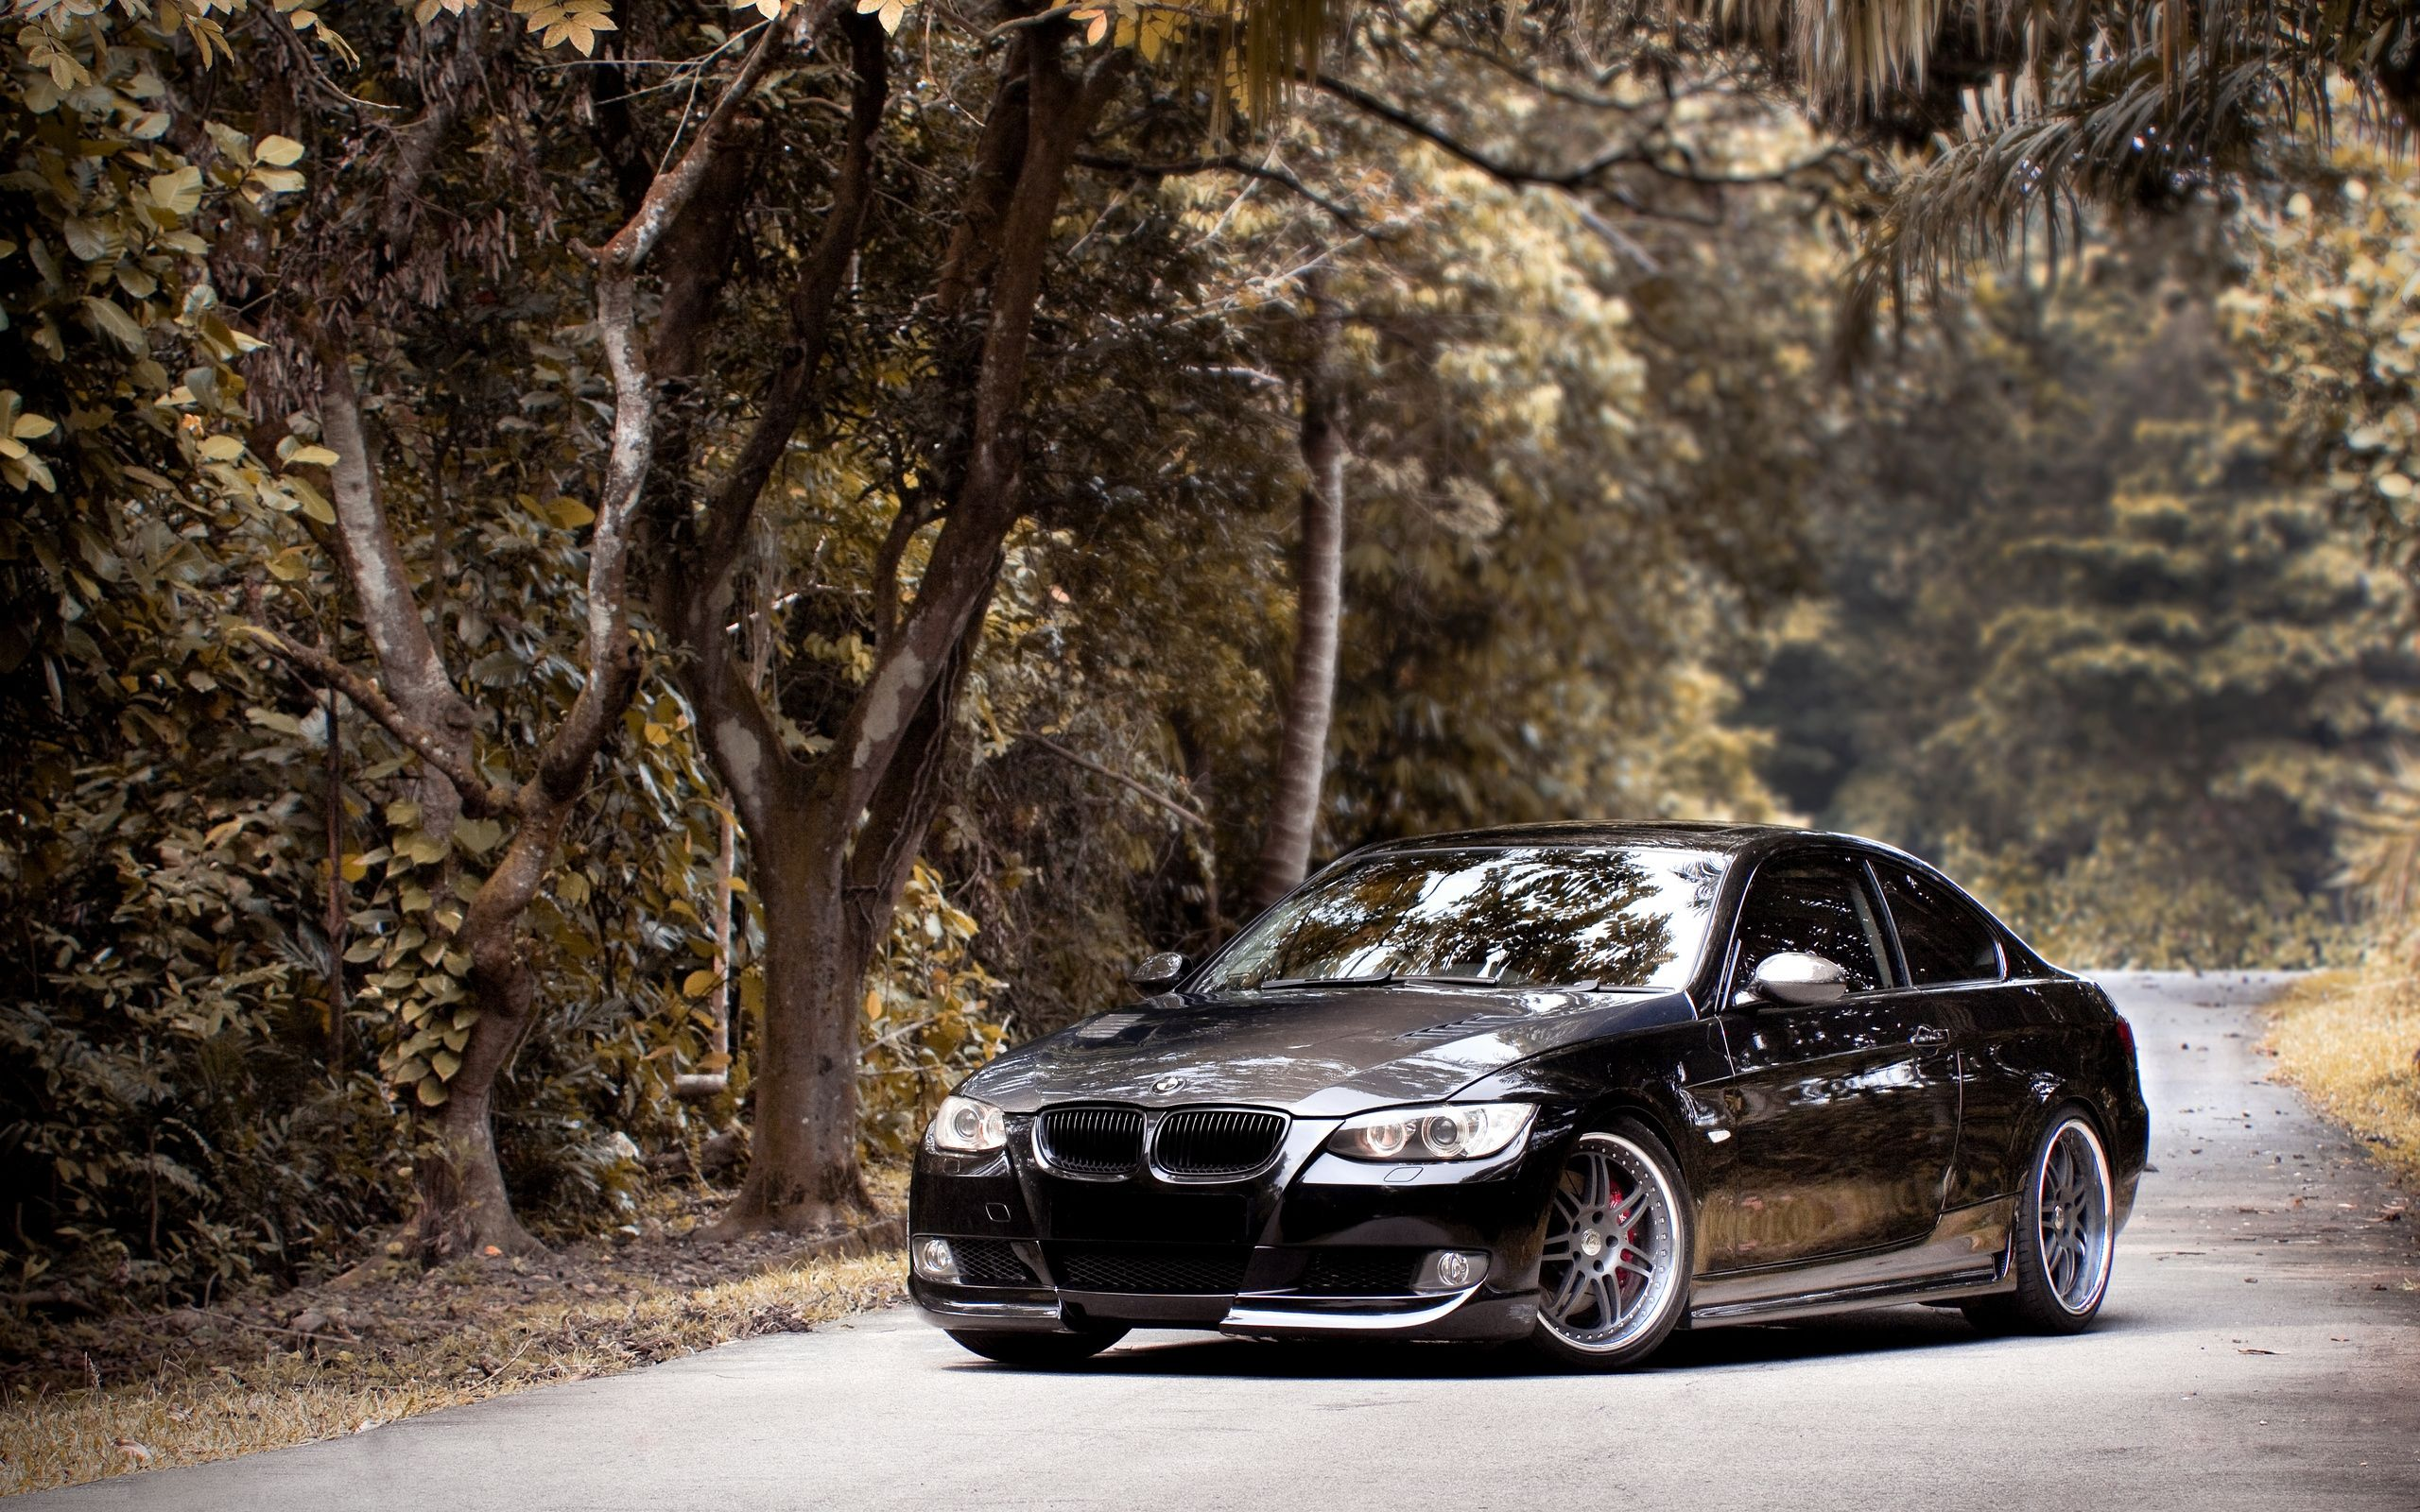 High Quality Bmw 335i Wallpapers   25601600 Bmw 335i E92 Bmw Black Road Black Forest  With Regard To Good Ideas